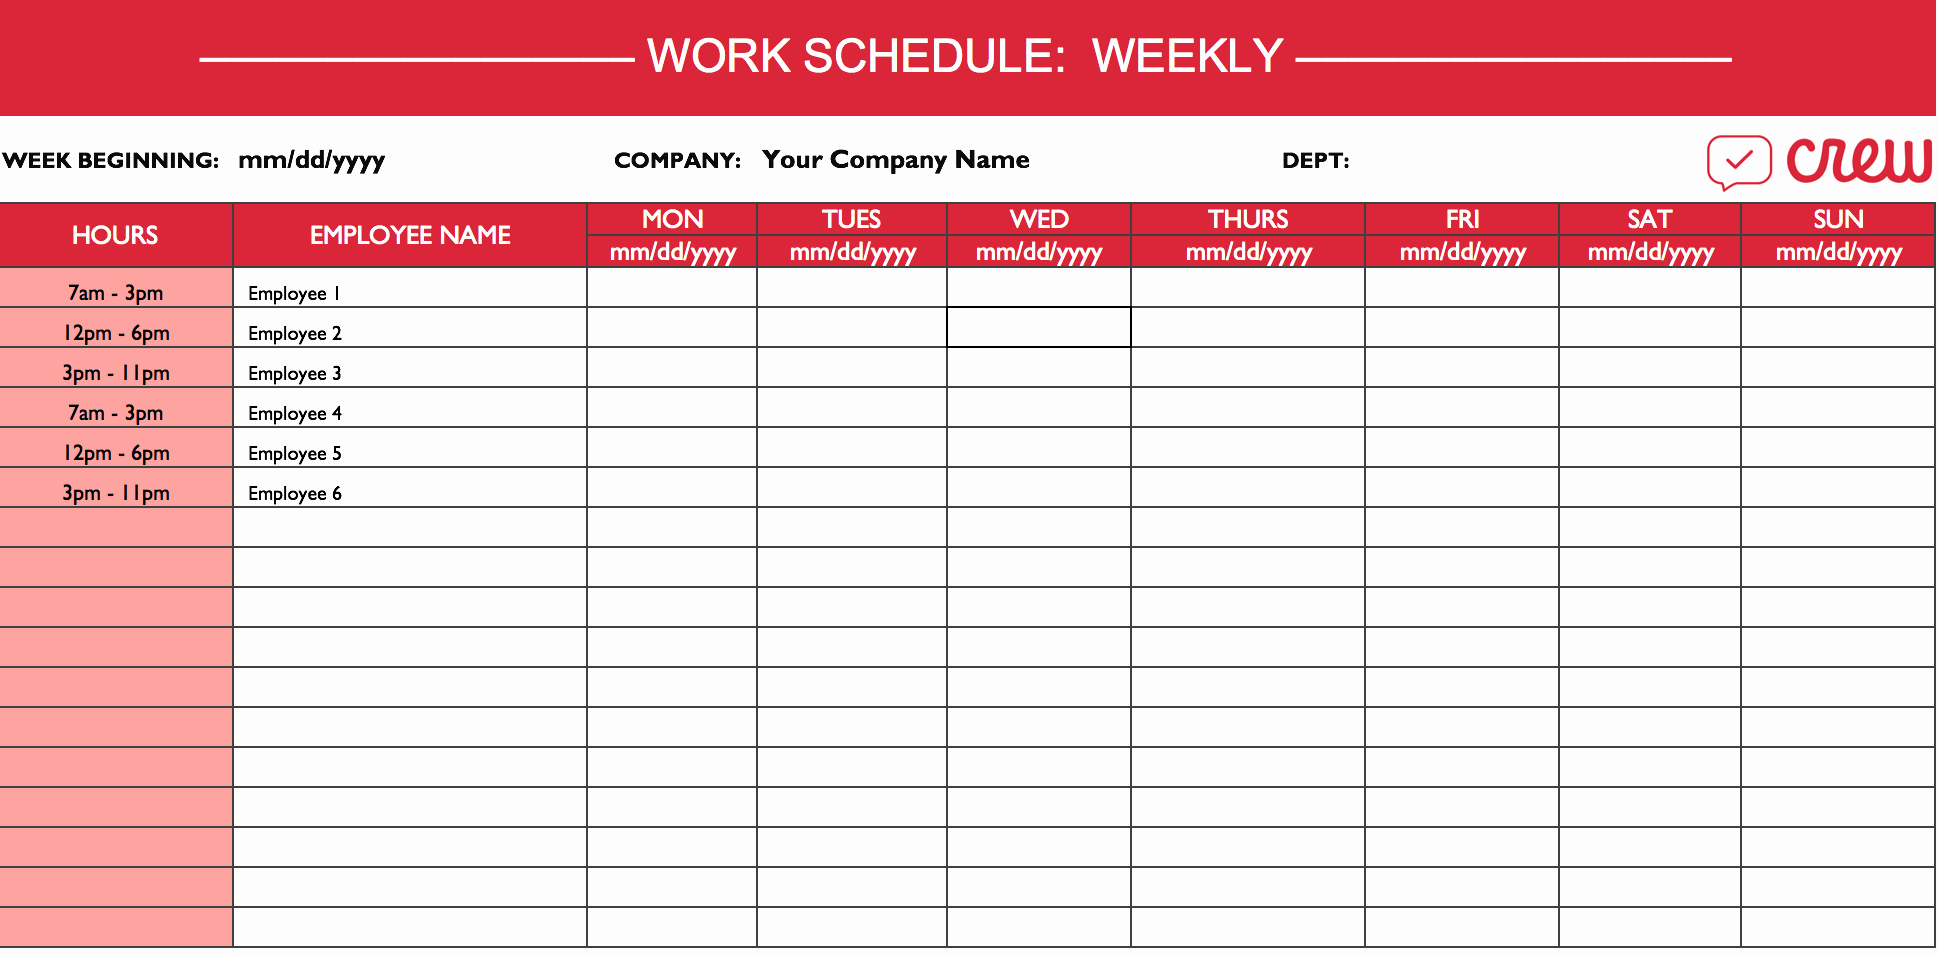 Work Schedule Template Excel Beautiful Weekly Work Schedule Template I Crew